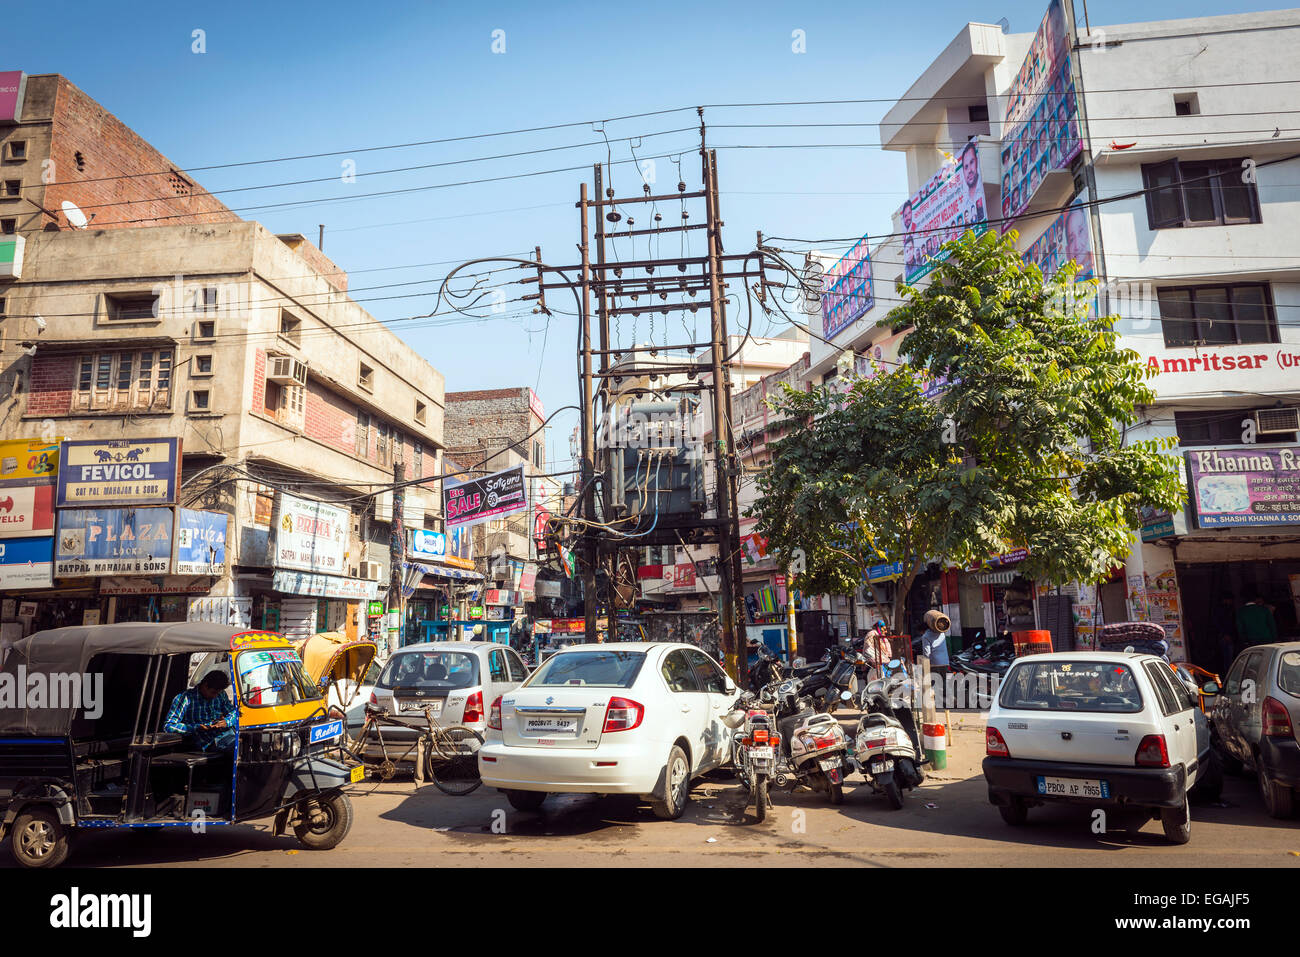 A tangle of electrical wiring on a city centre street in Amritsar, Punjab, India - Stock Image